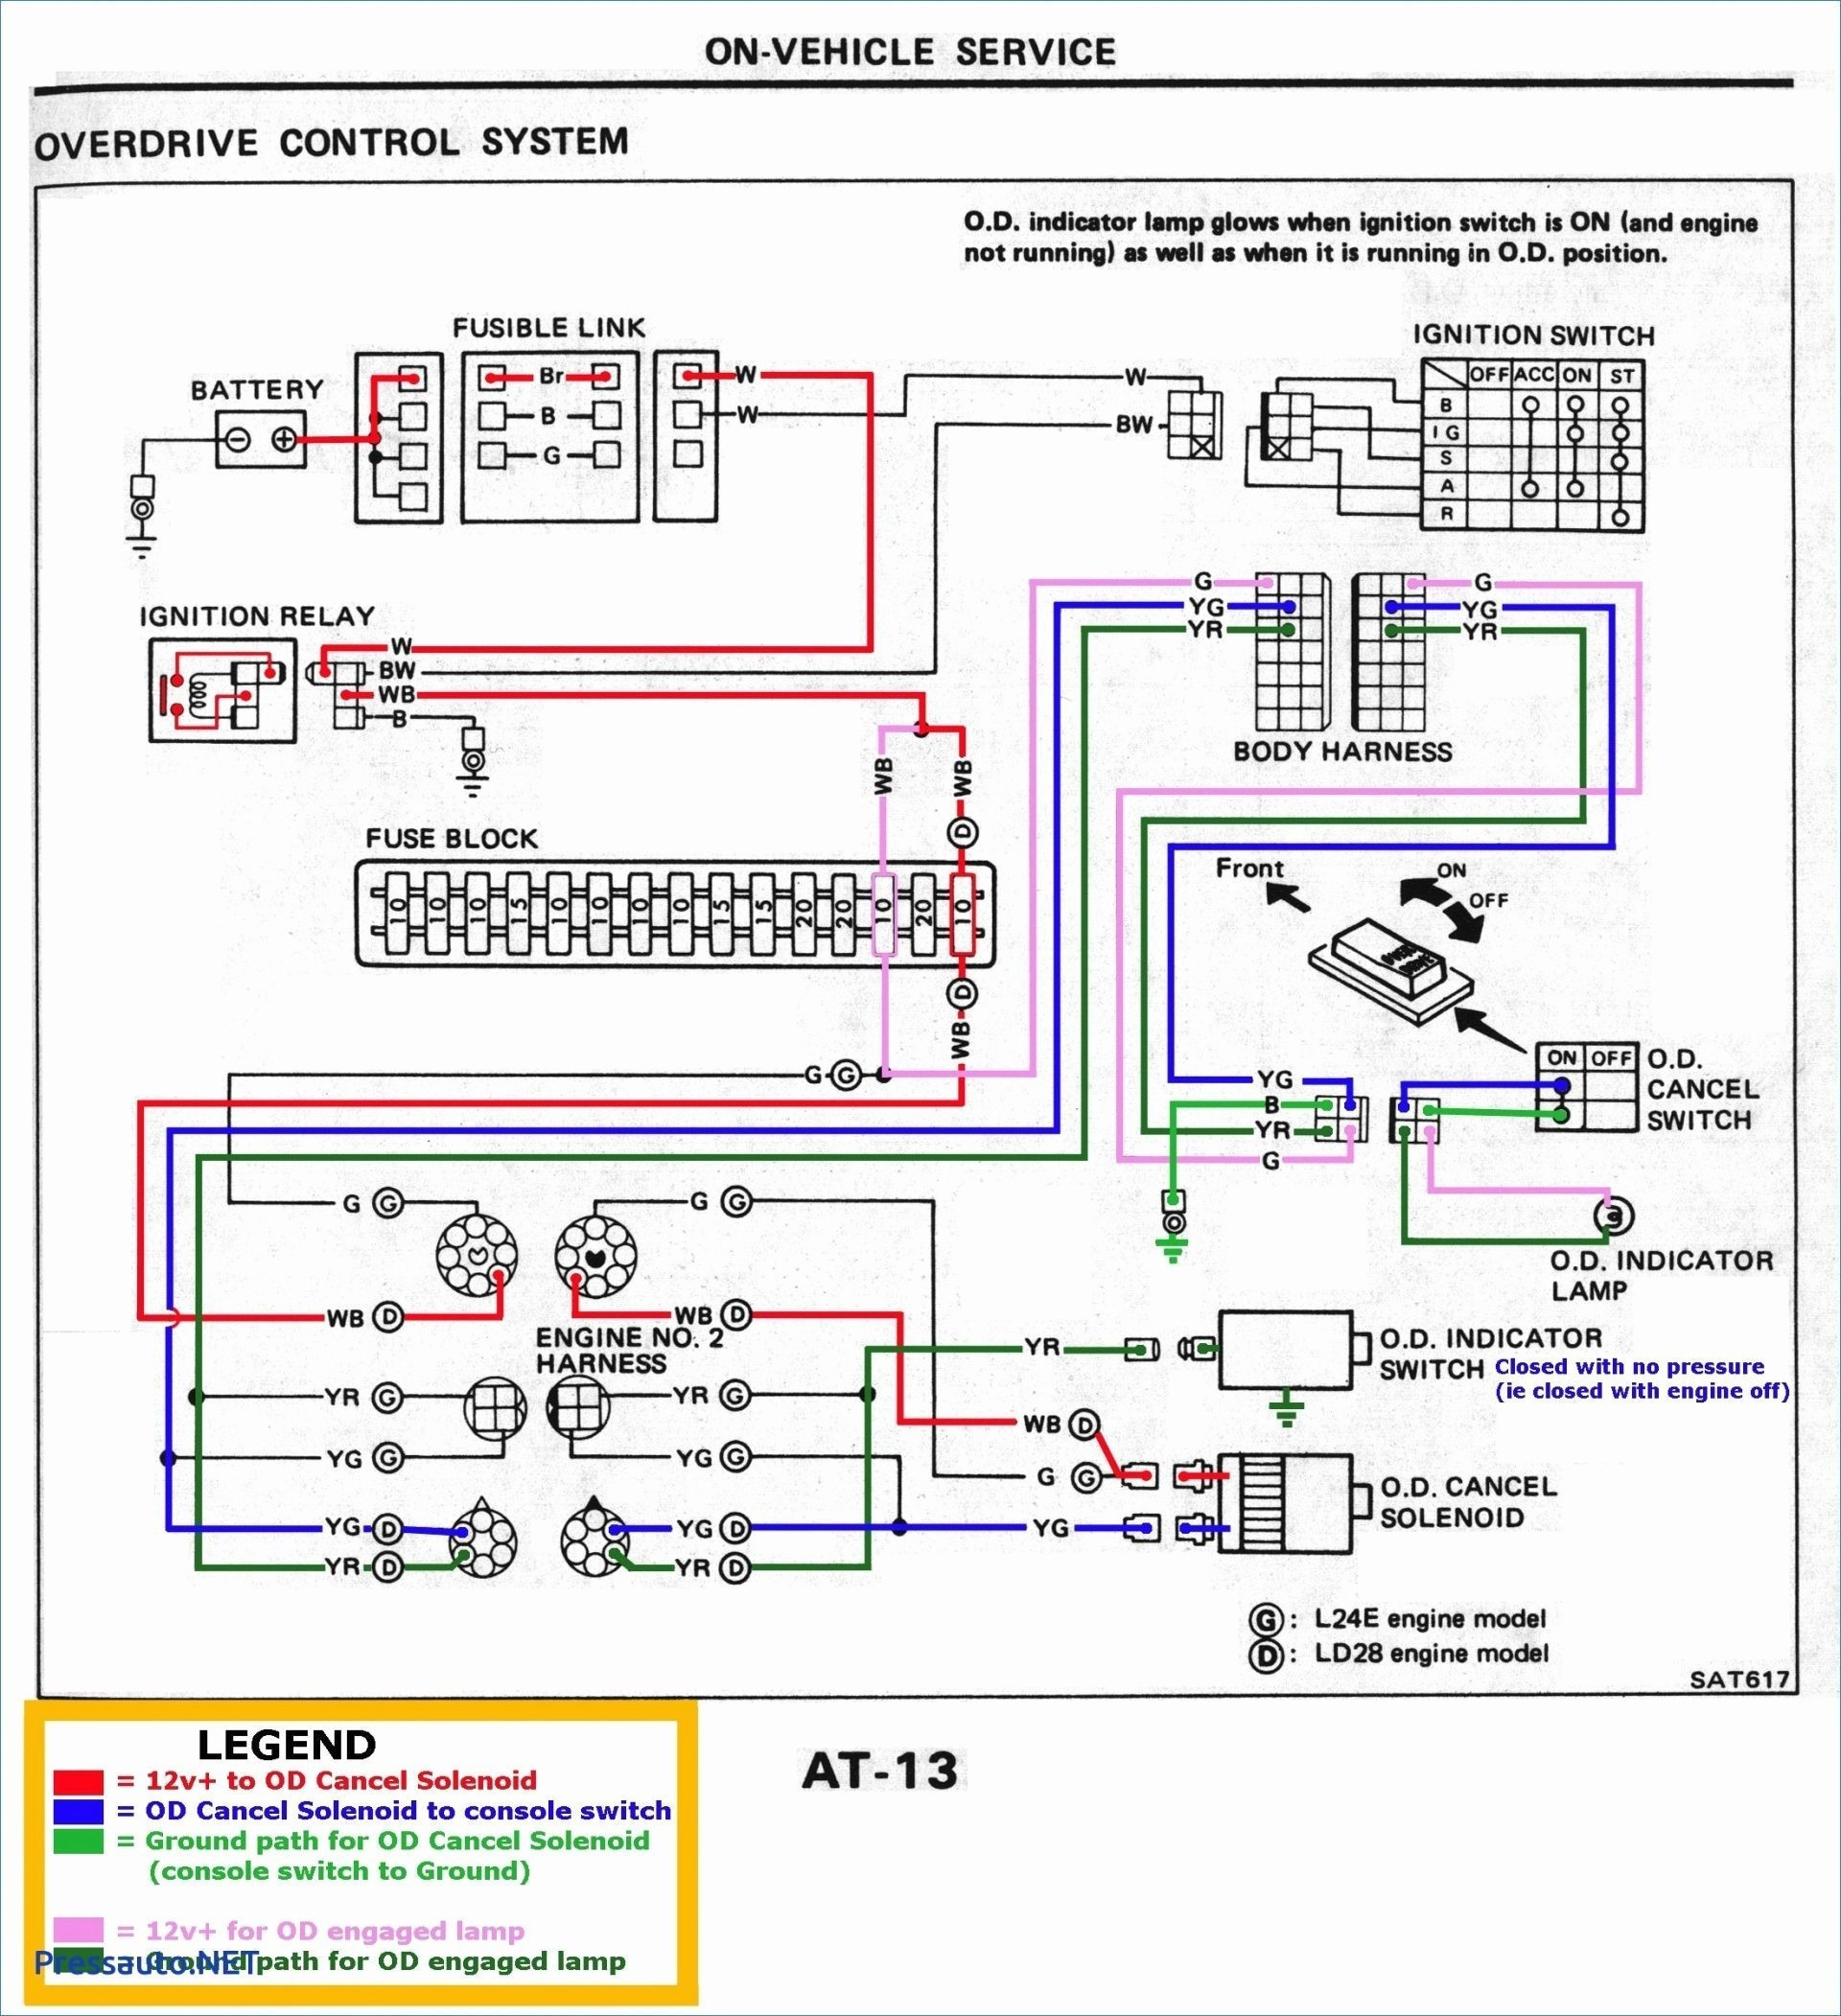 Three Phase Wiring Diagrams 208v Single Phase Motor Wiring Diagram Of Three Phase Wiring Diagrams 3 Phase 220v Generator Wiring Diagrams